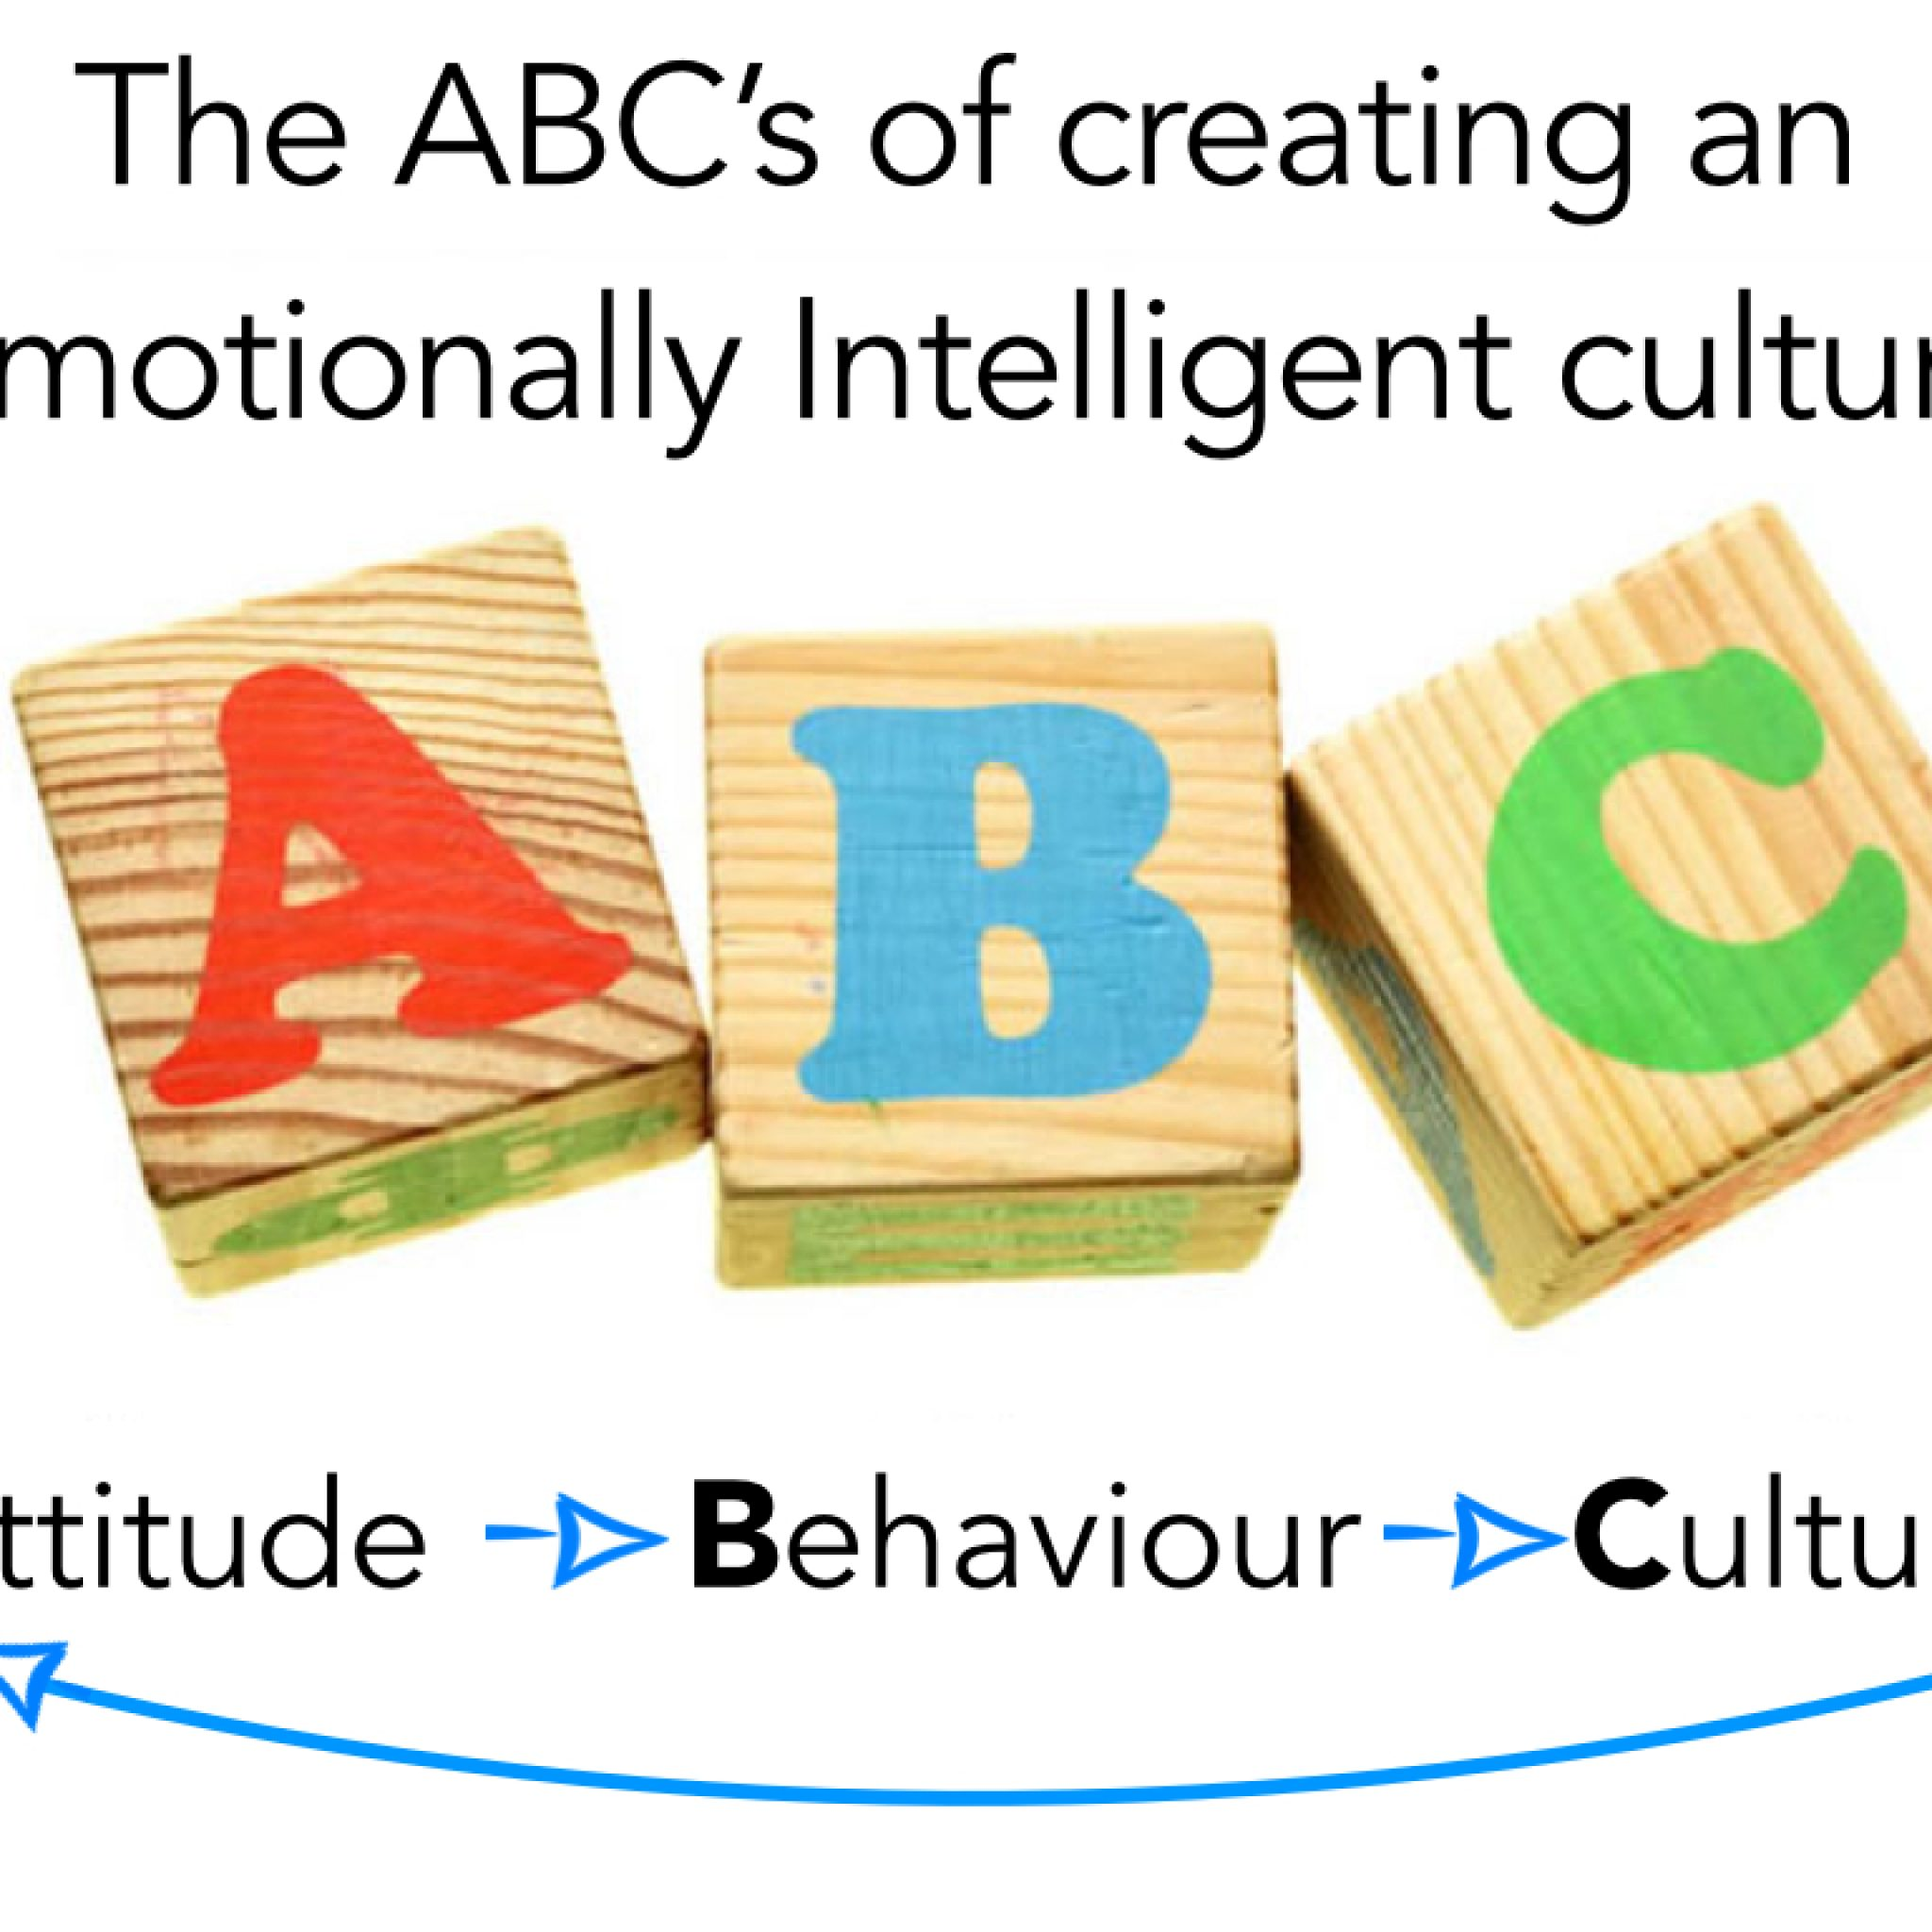 The ABC's of creating an Emotionally Intelligent culture